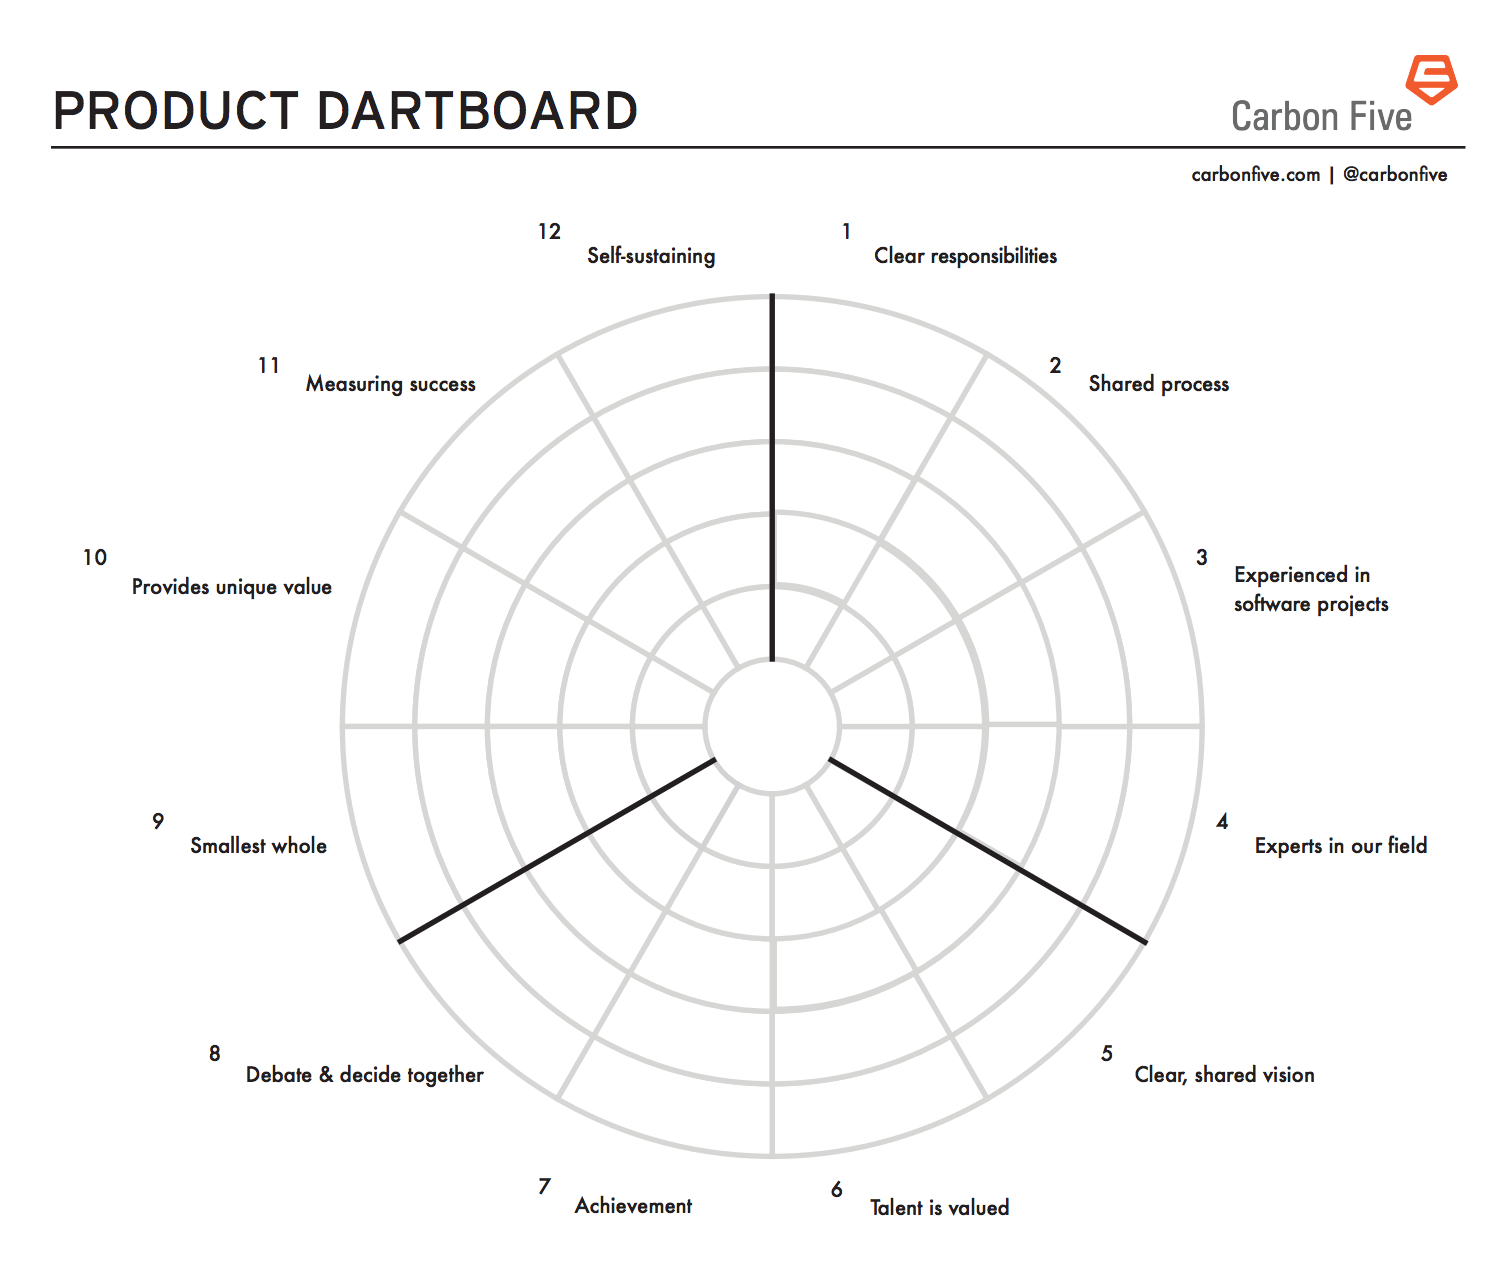 The Product Dartboard